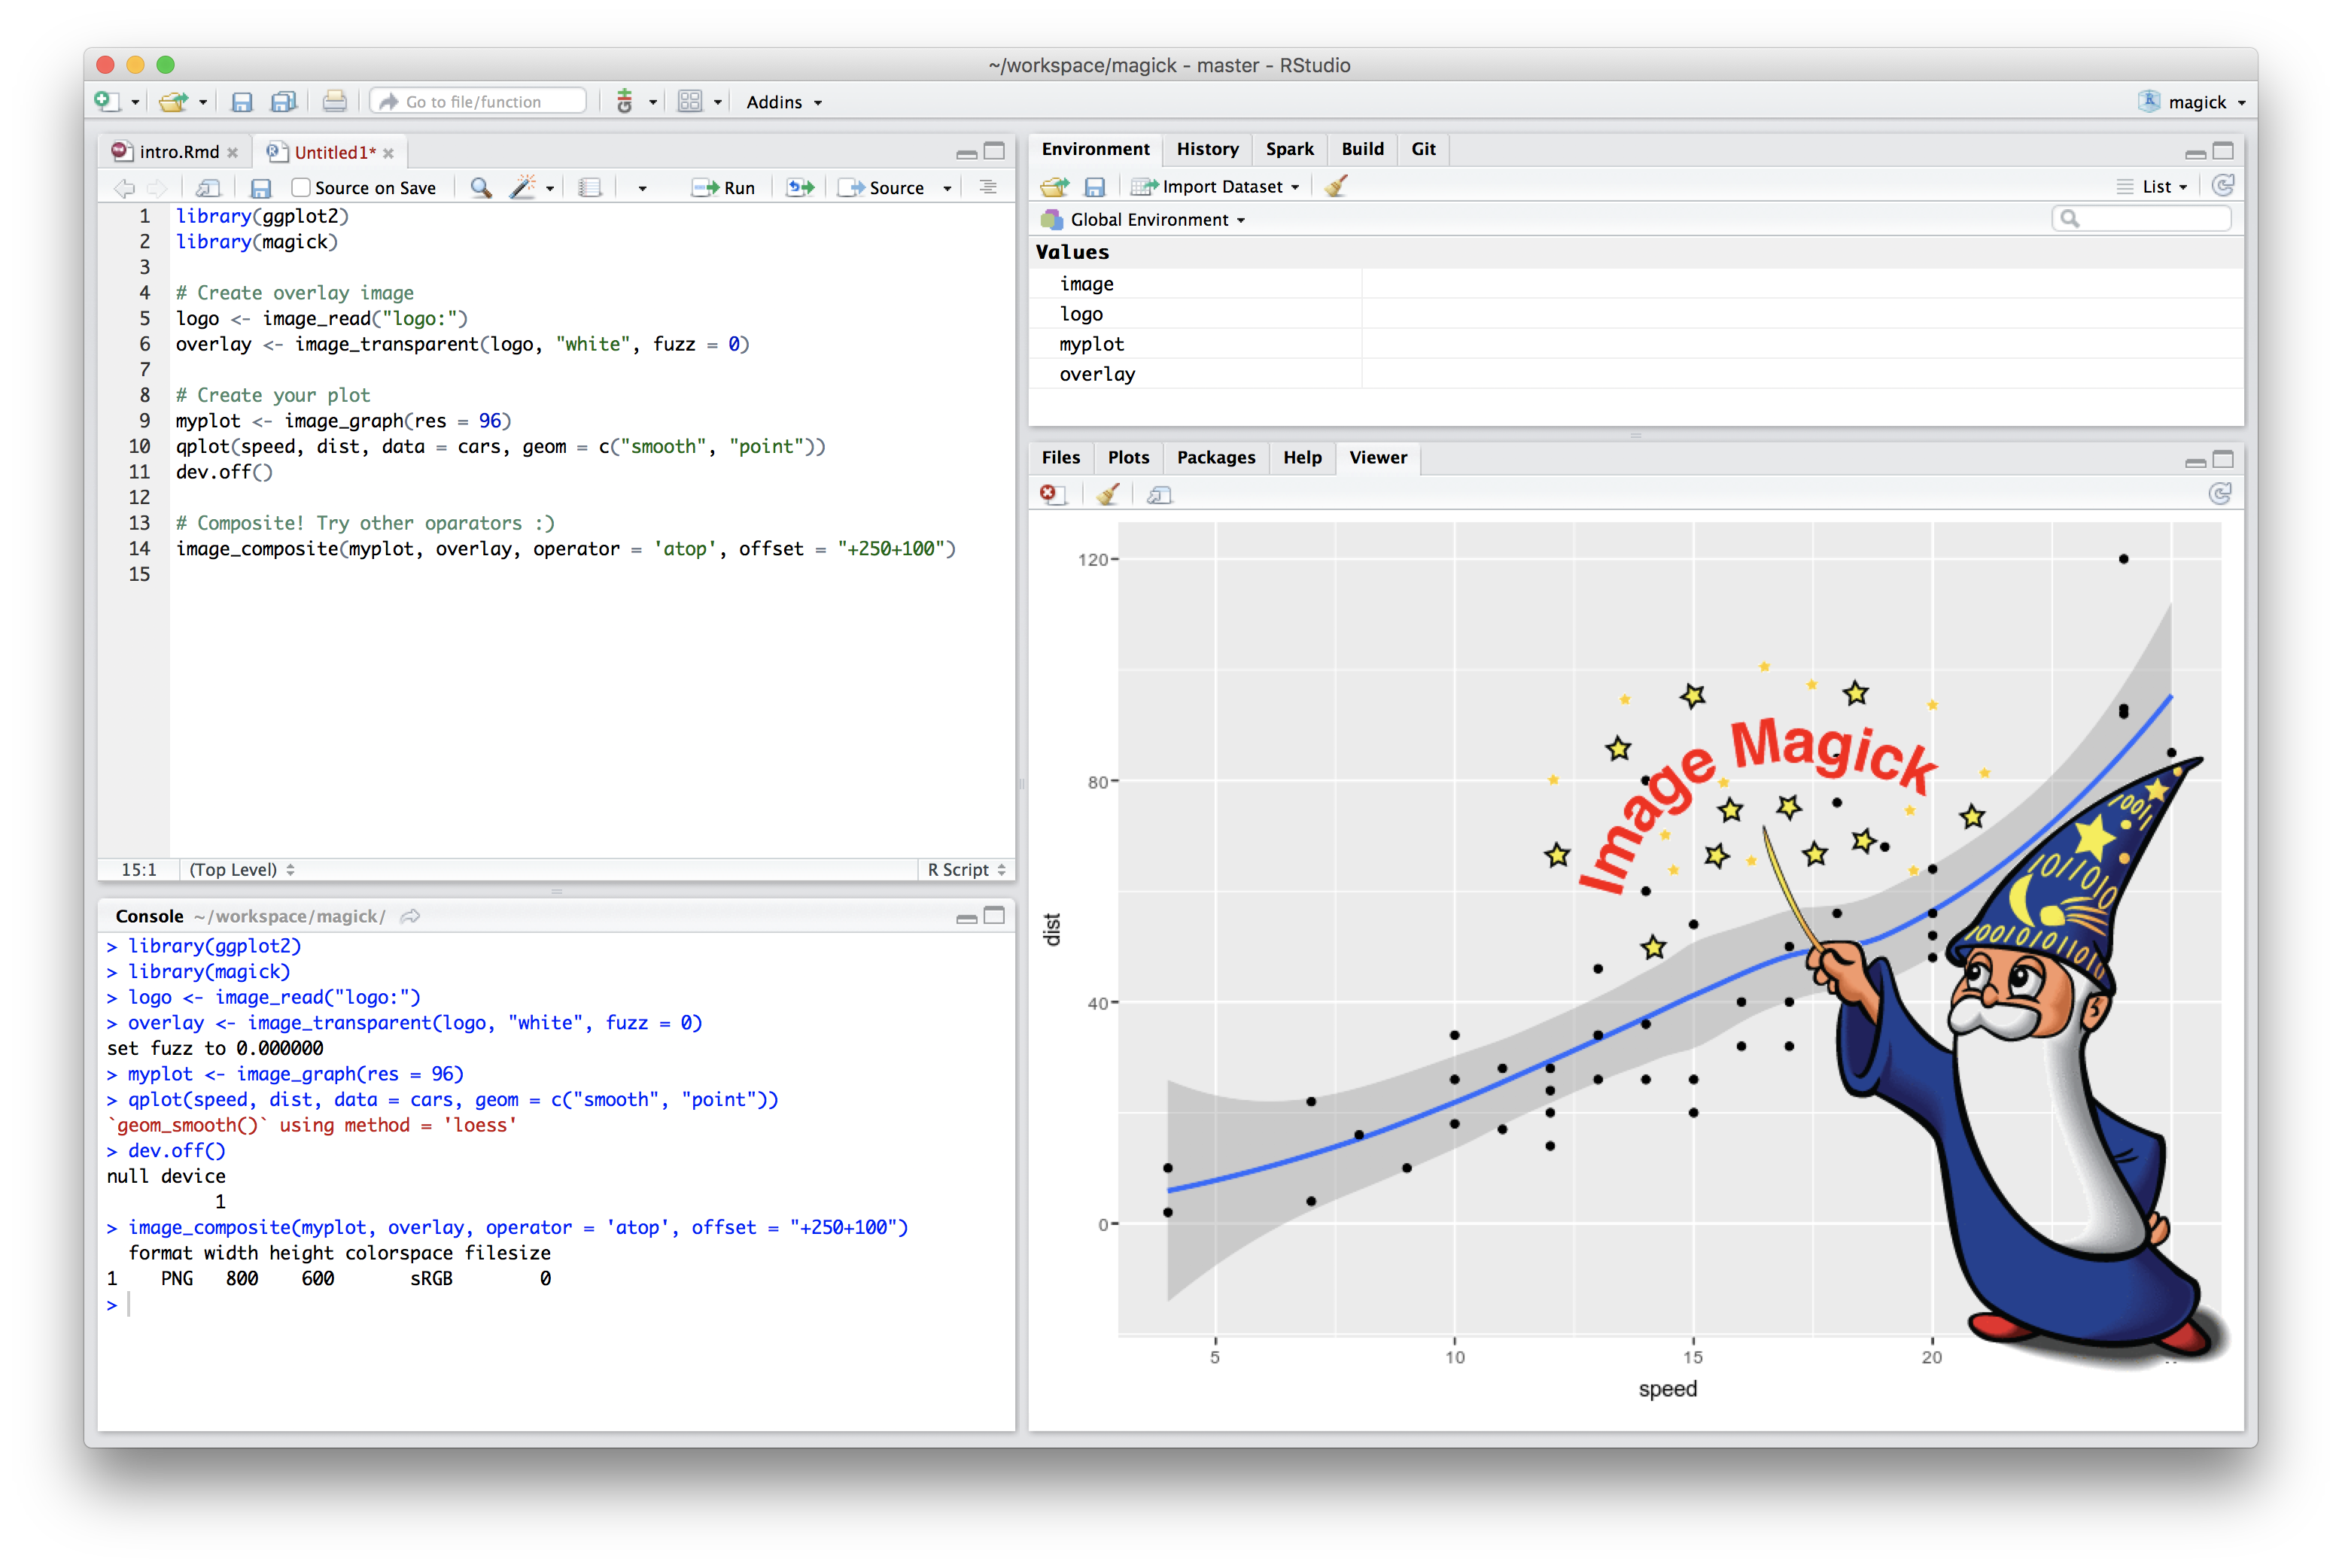 RStudio Screenshot